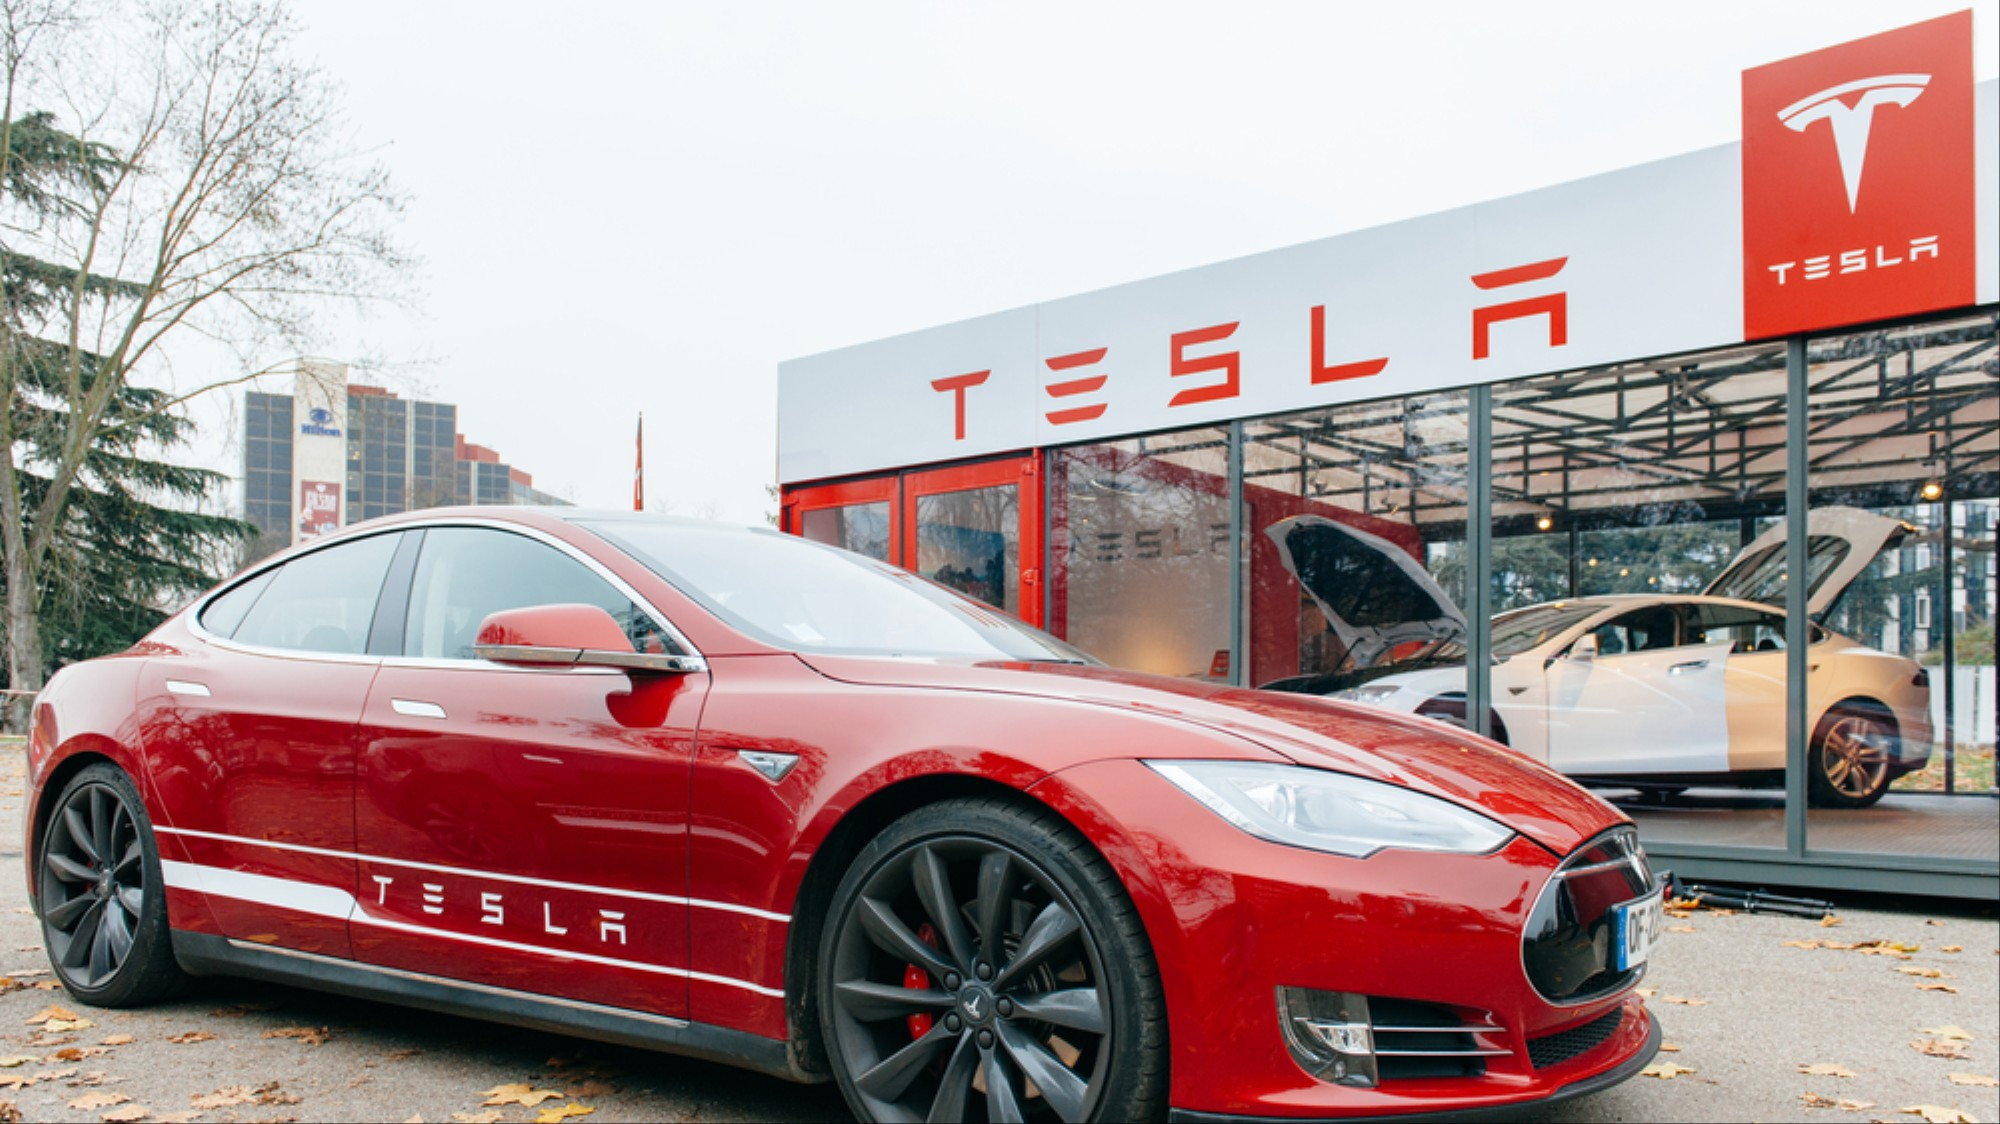 Researchers Figured Out How to Hack a Tesla's Locks in Under